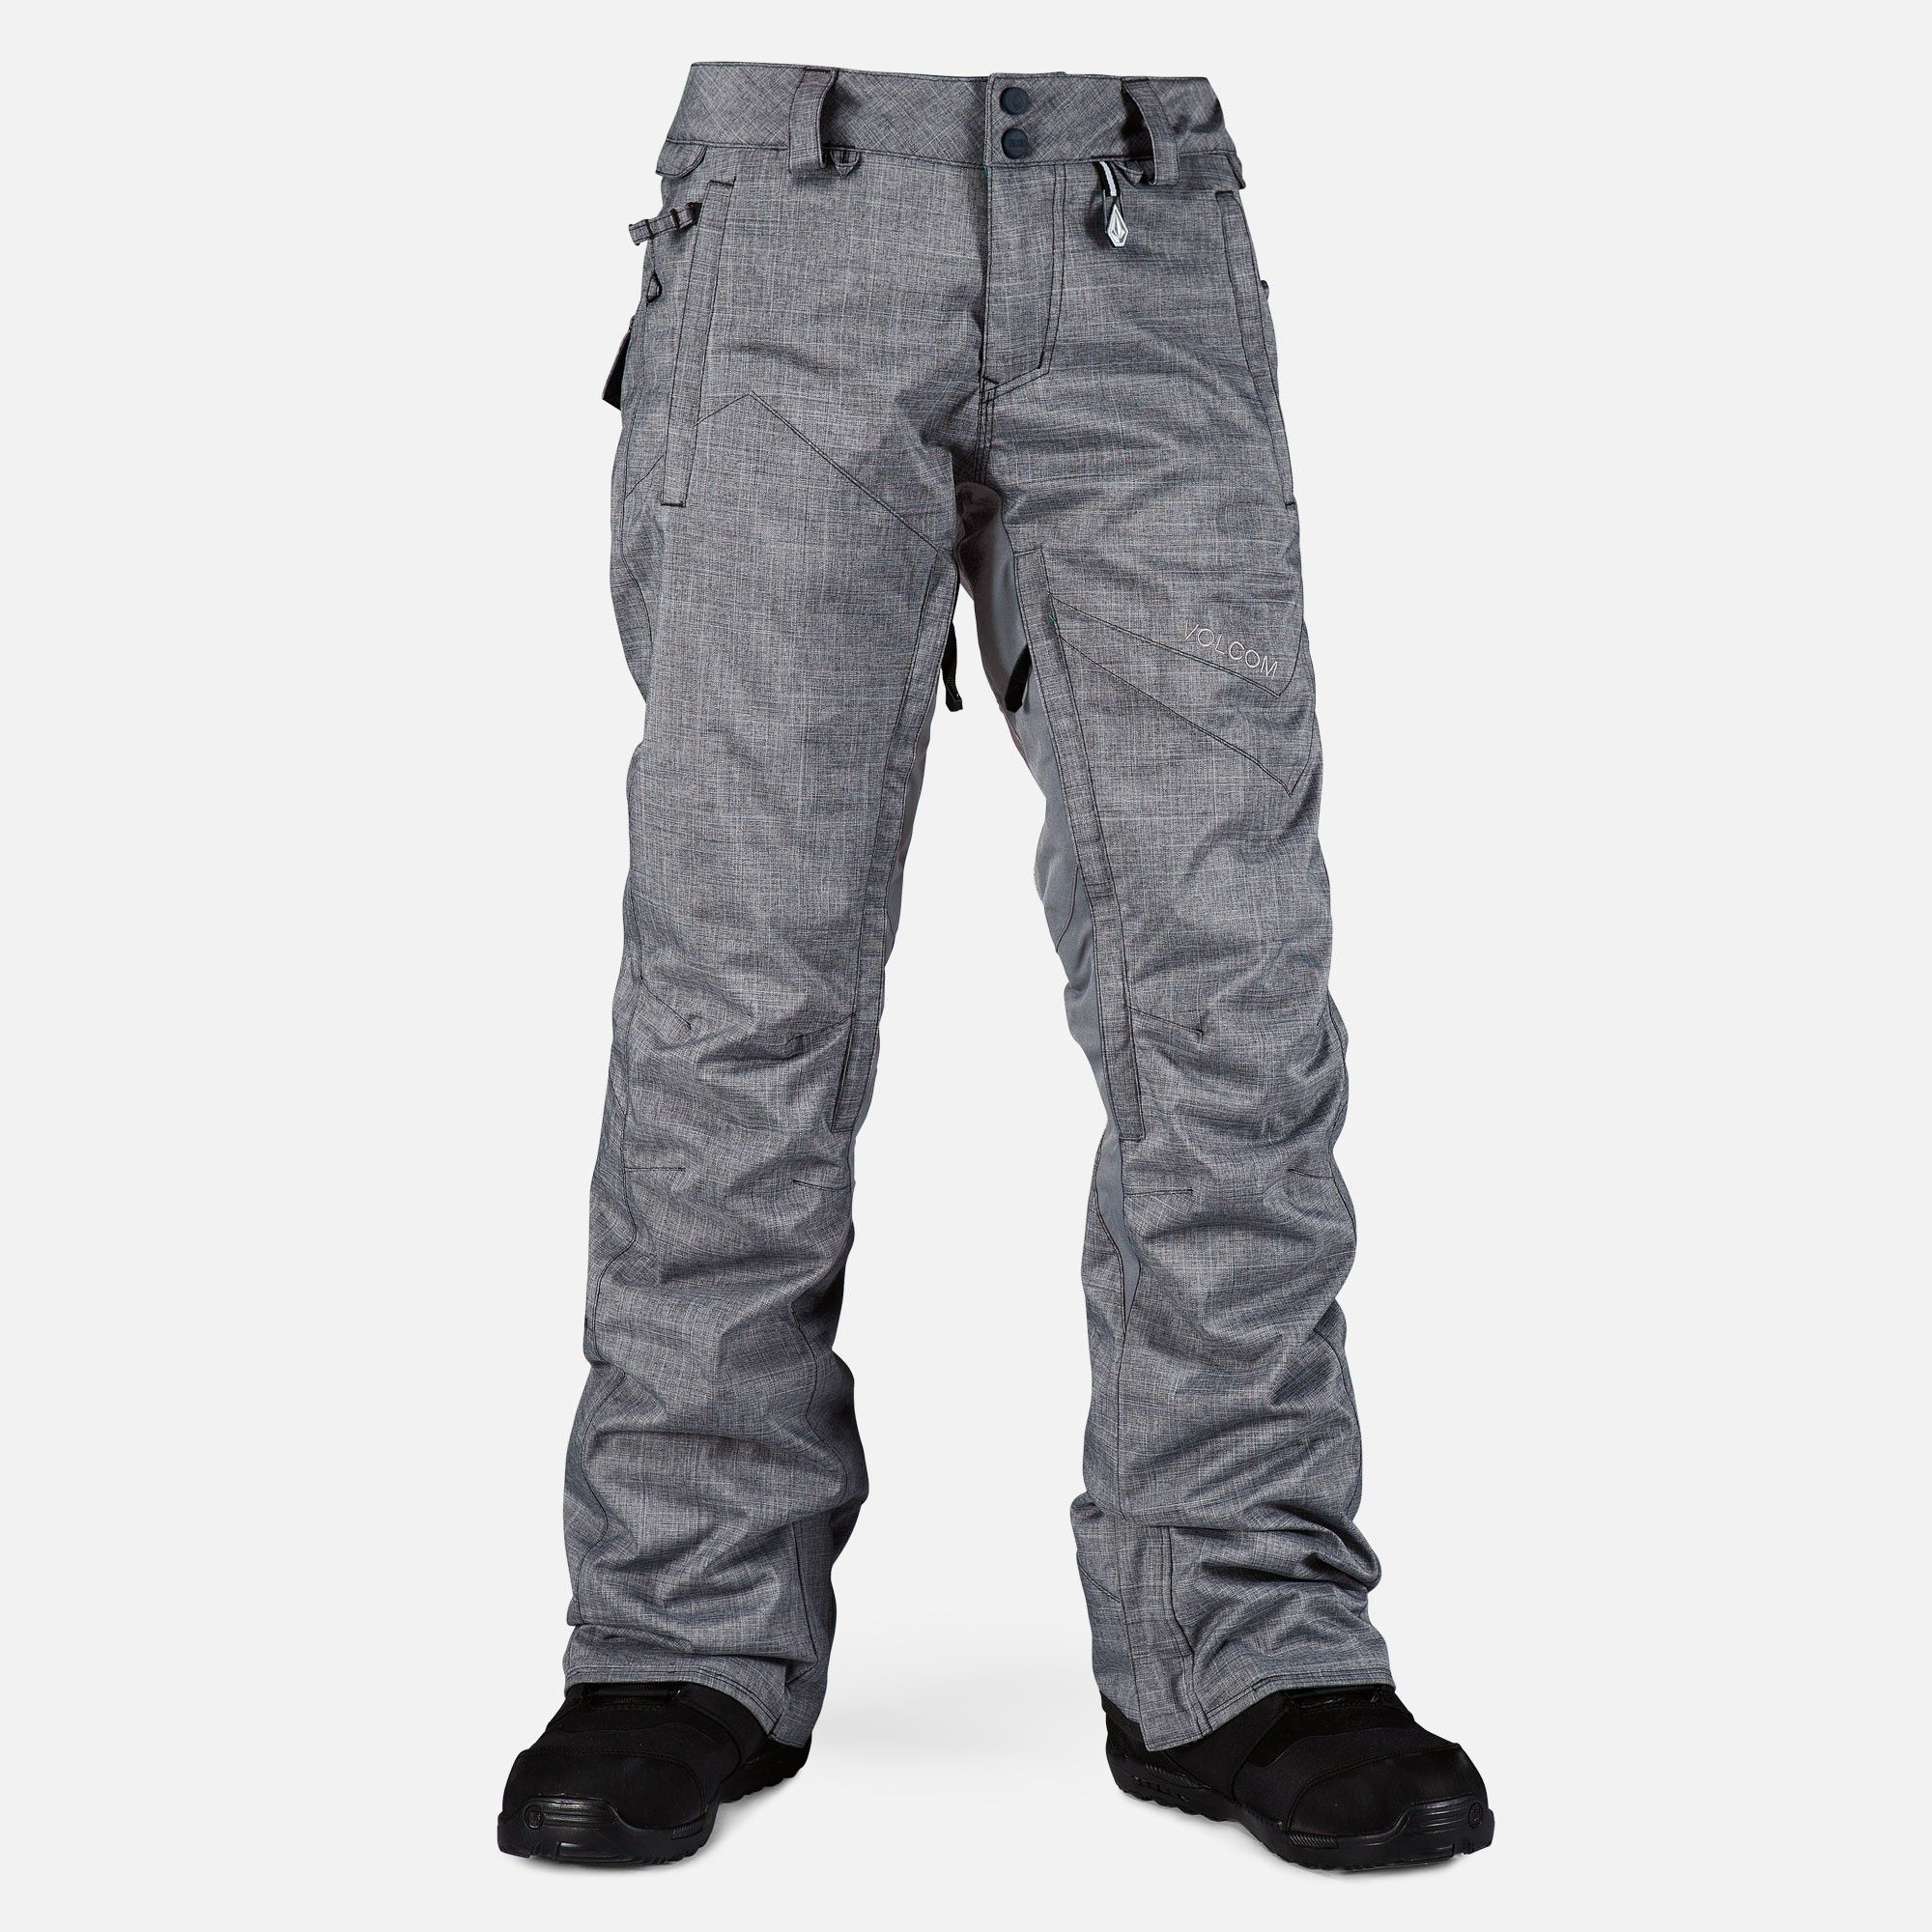 Ignition Ins Trousers - Volcom Snow - Collections - Women - Snow ... 7dfd1cec3